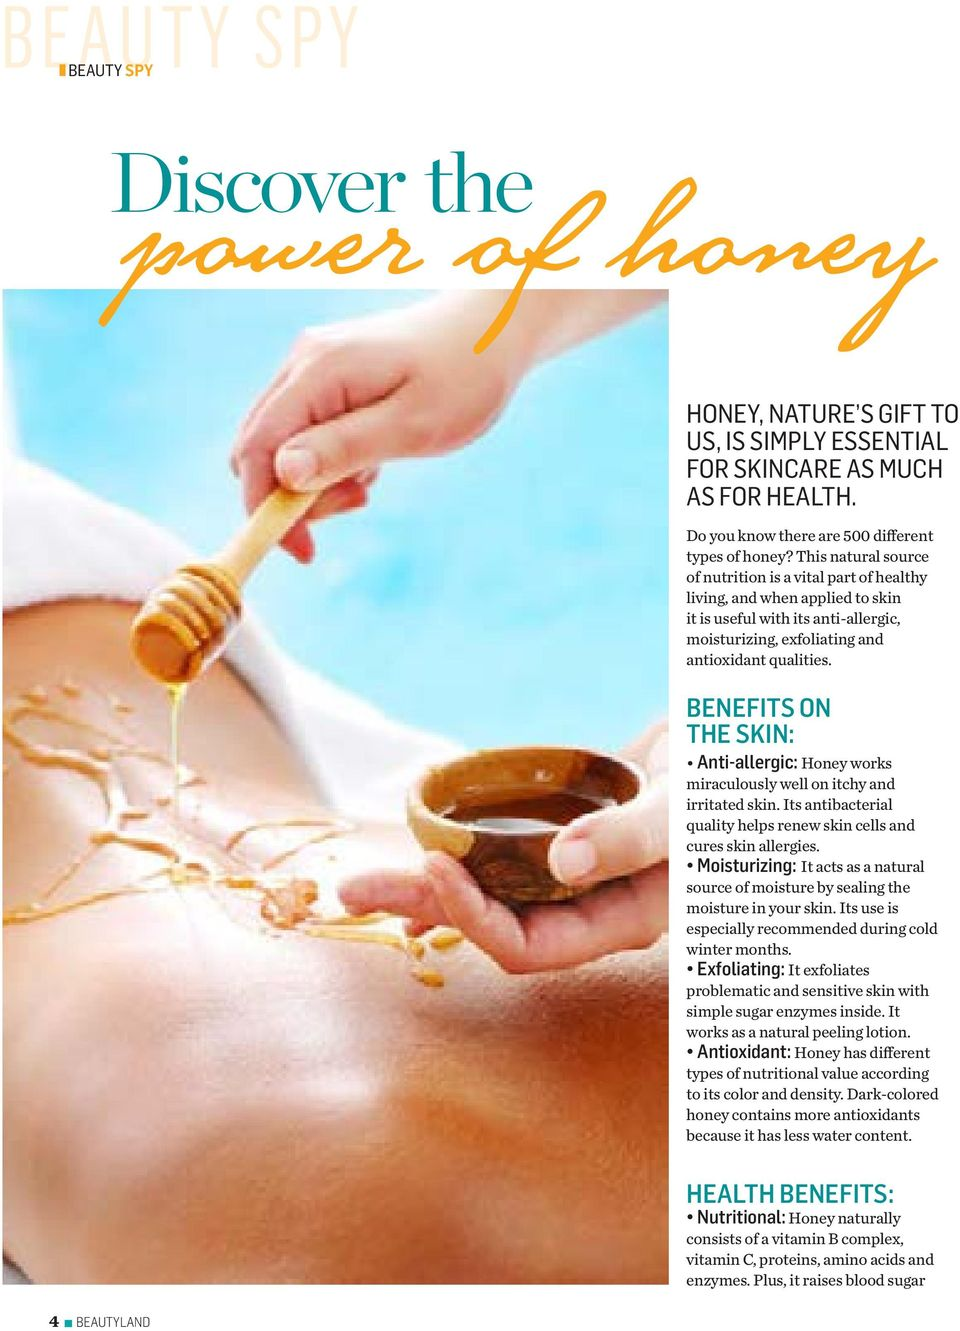 BENEFITS ON THE SKIN: Anti-allergic: Honey works miraculously well on itchy and irritated skin. Its antibacterial quality helps renew skin cells and cures skin allergies.